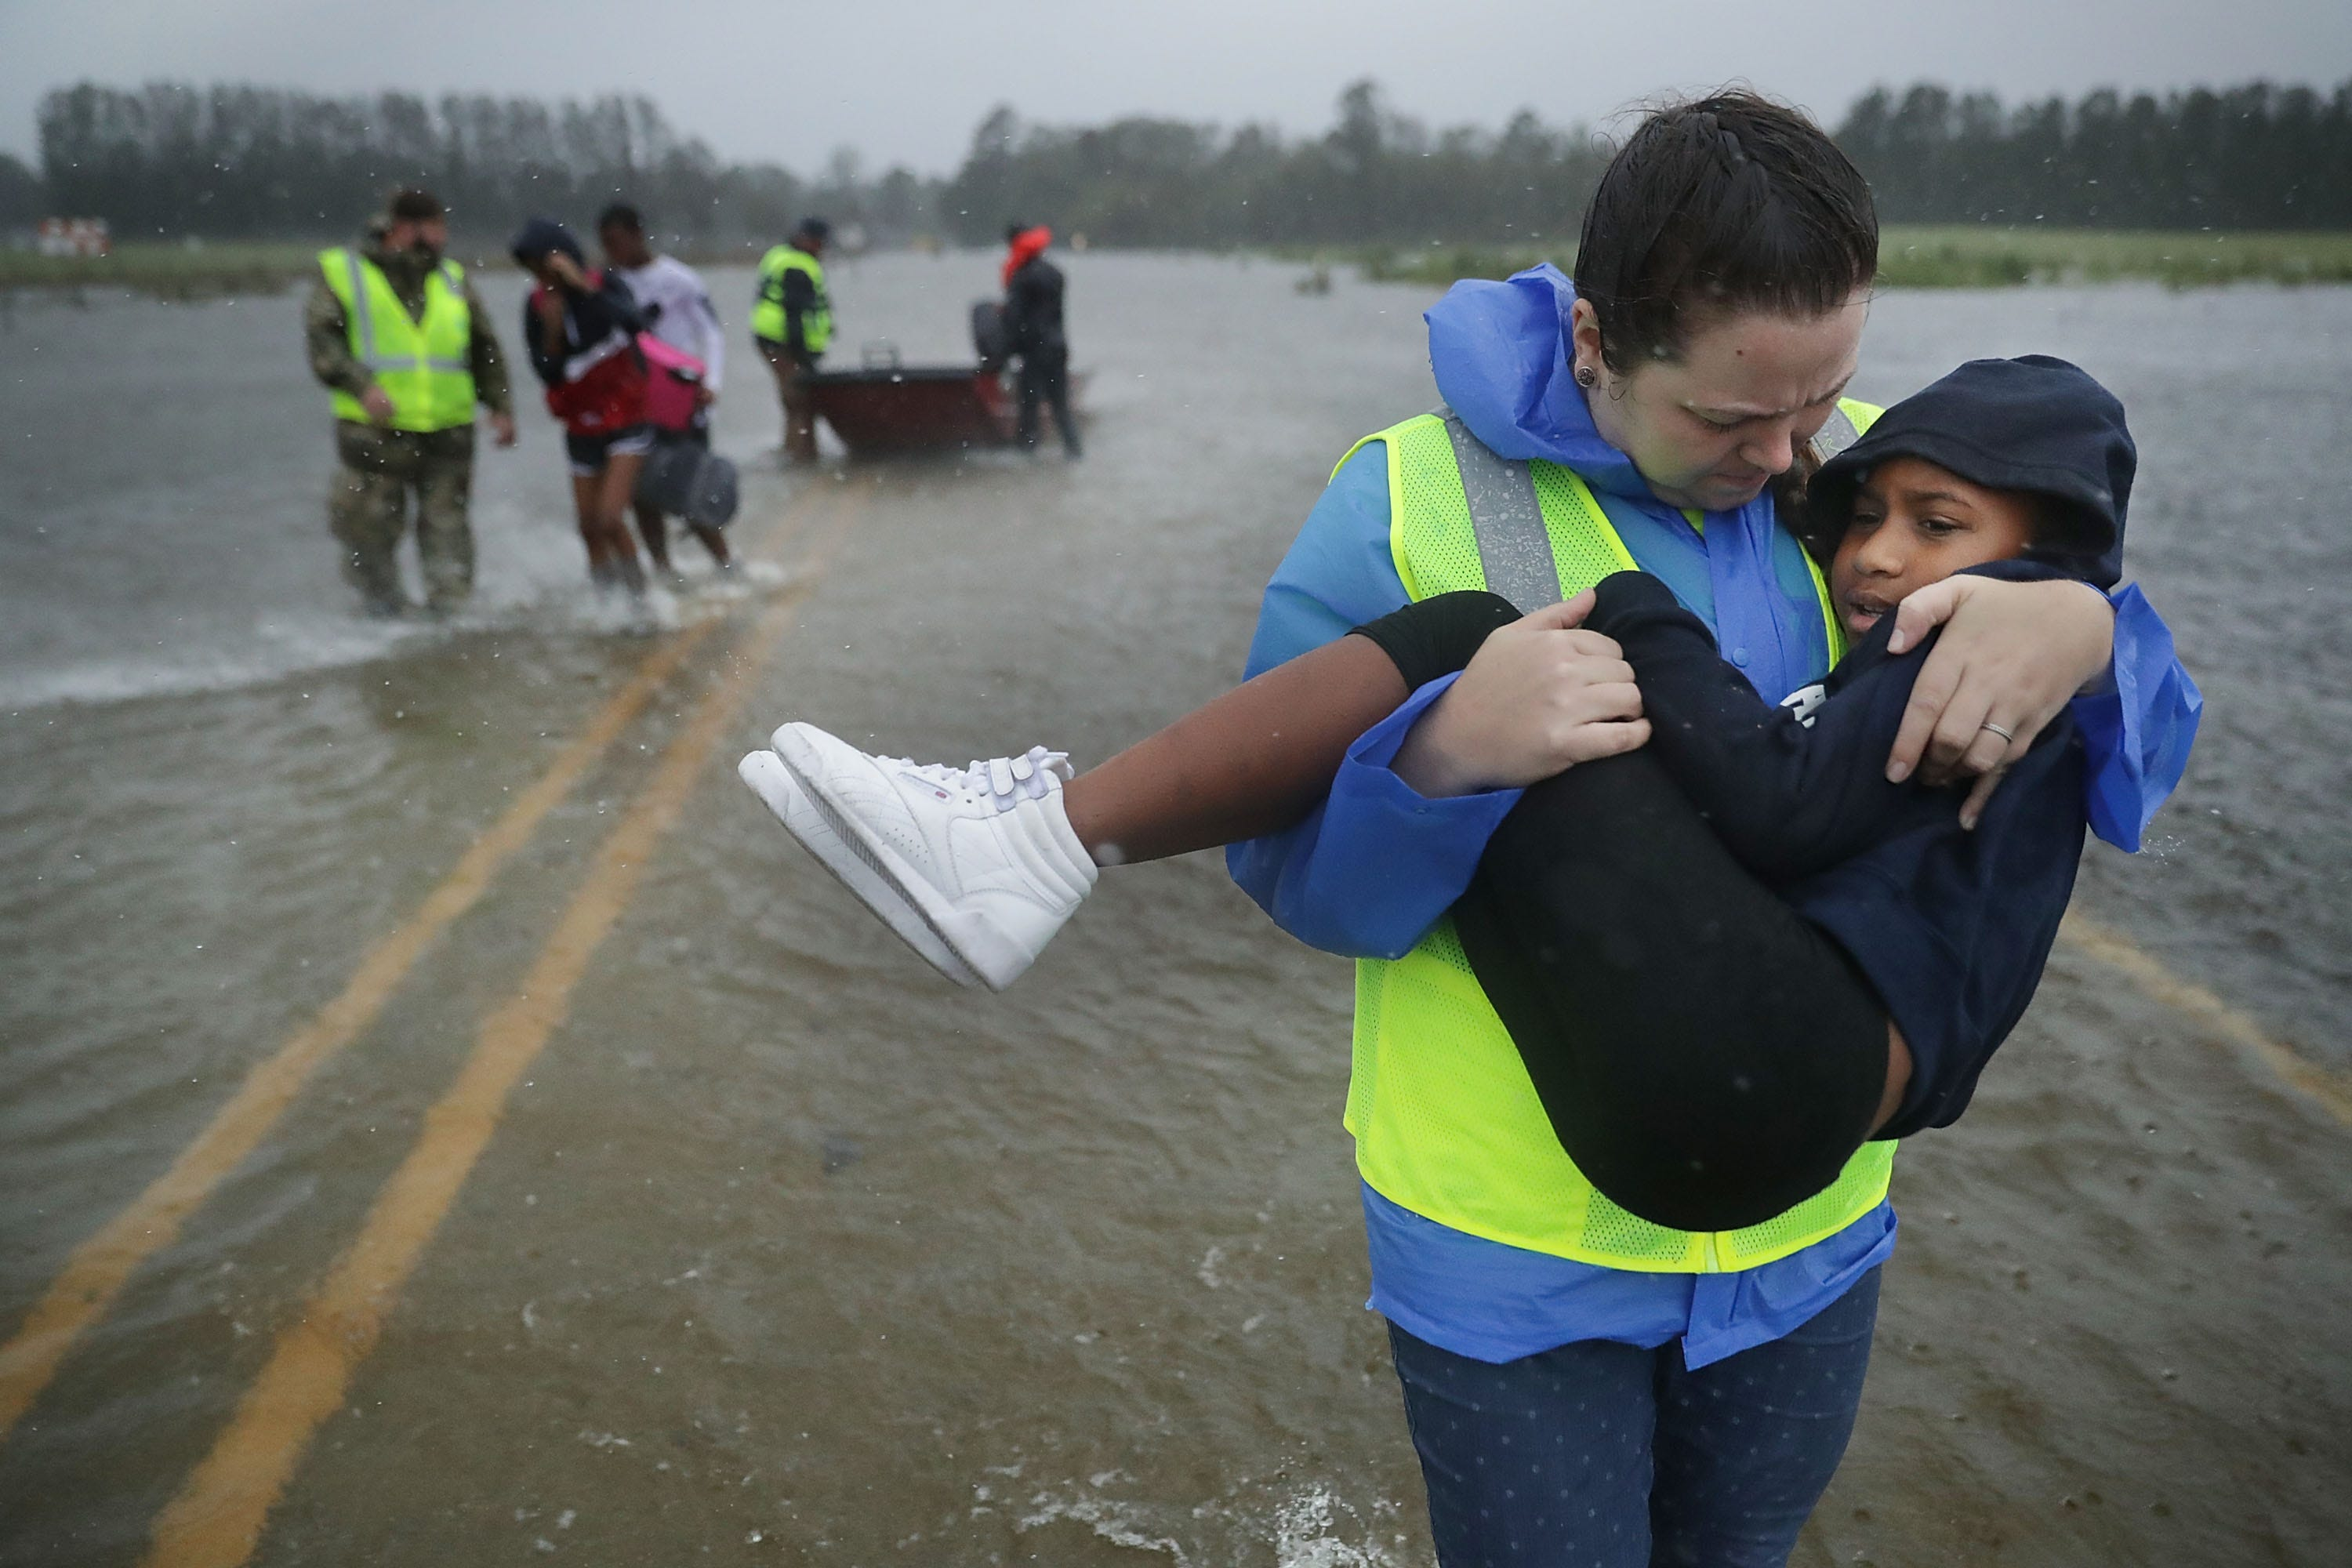 Florence marches into South Carolina, having killed 5 despite dramatic rescues